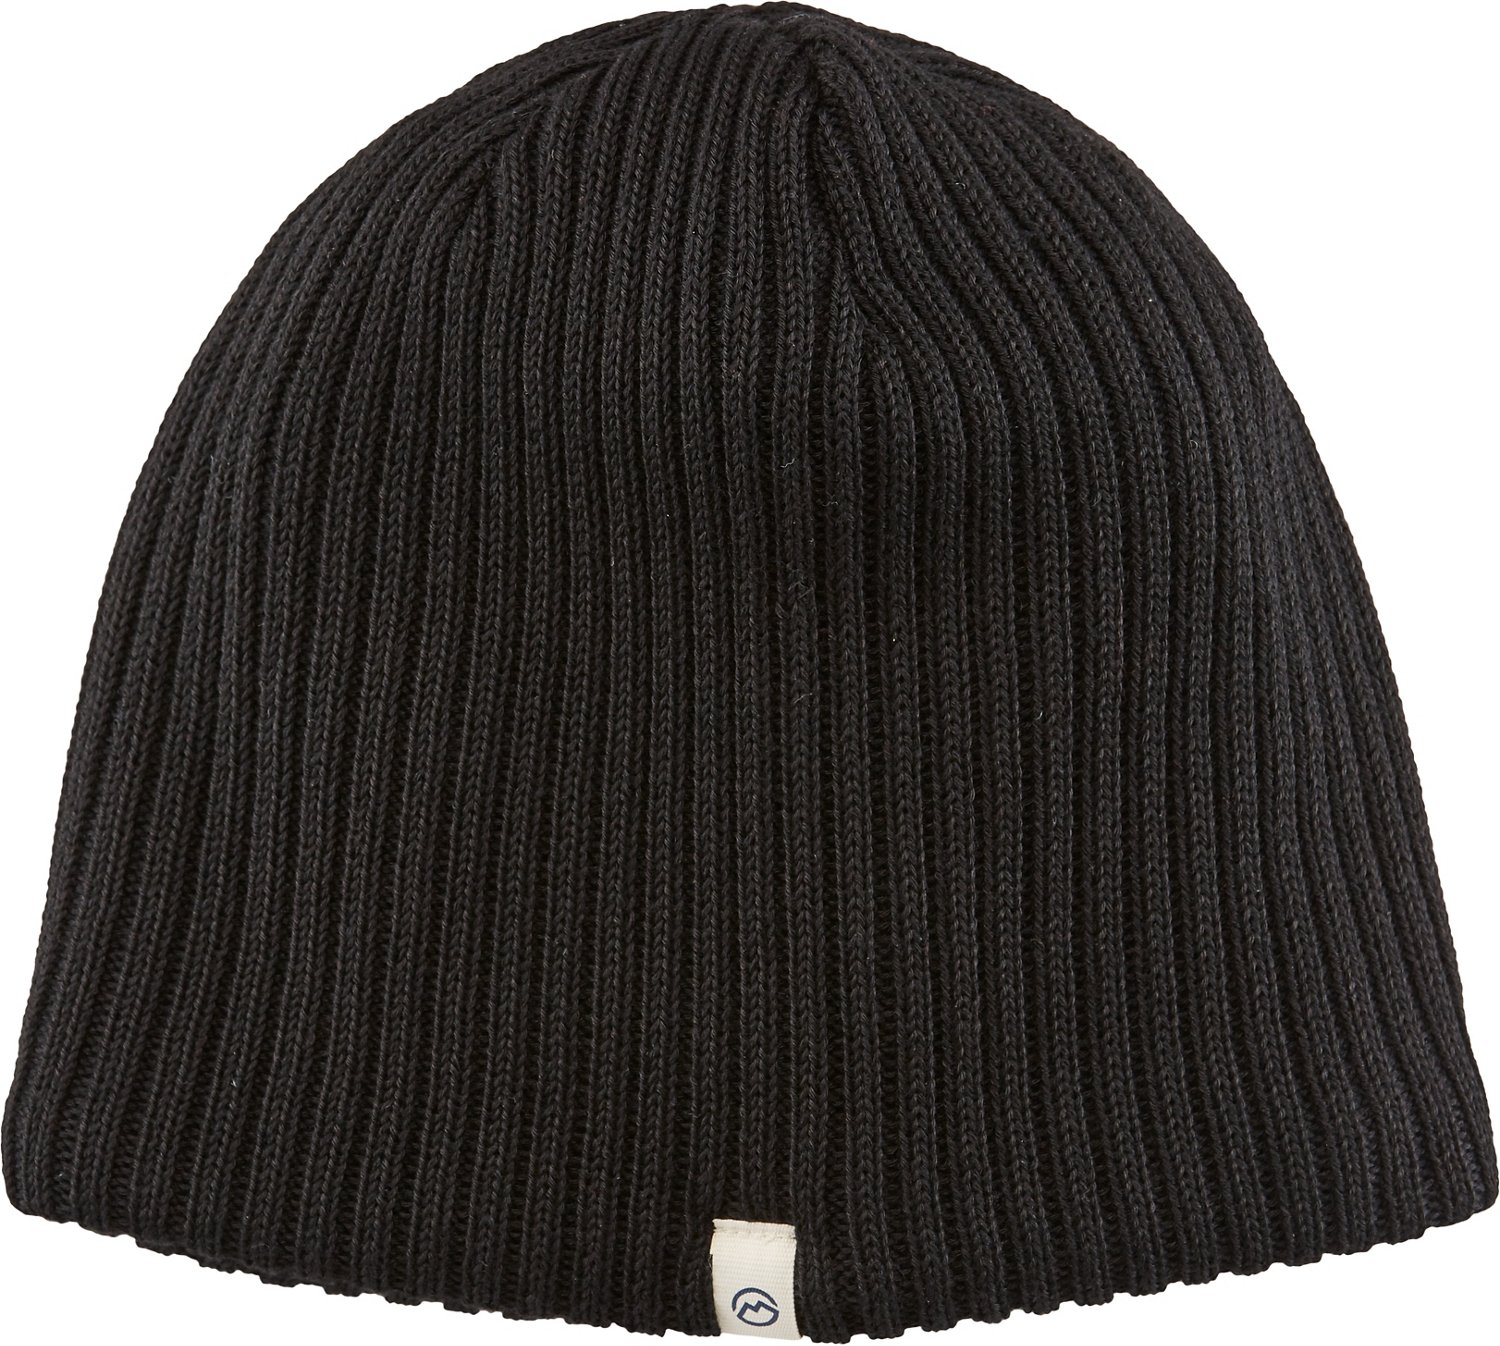 Display product reviews for Magellan Outdoors Men s Dri-Release Beanie 682b88c54723